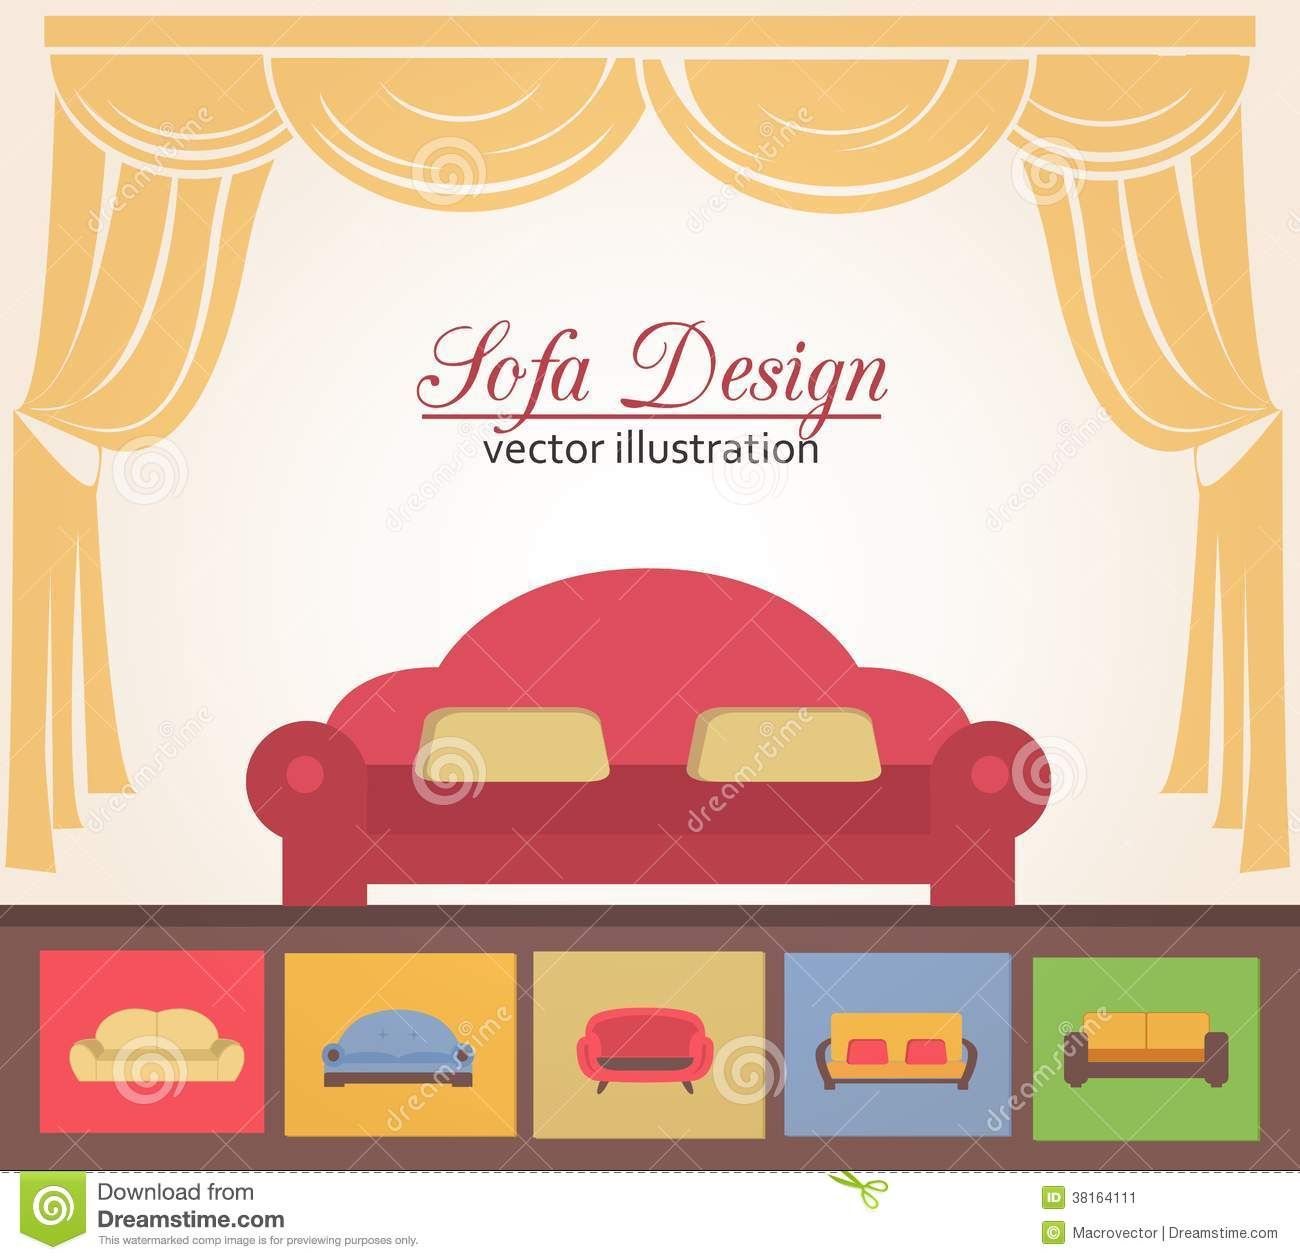 Poster design elements - Advertising Brochure Couch Design Illustration Poster